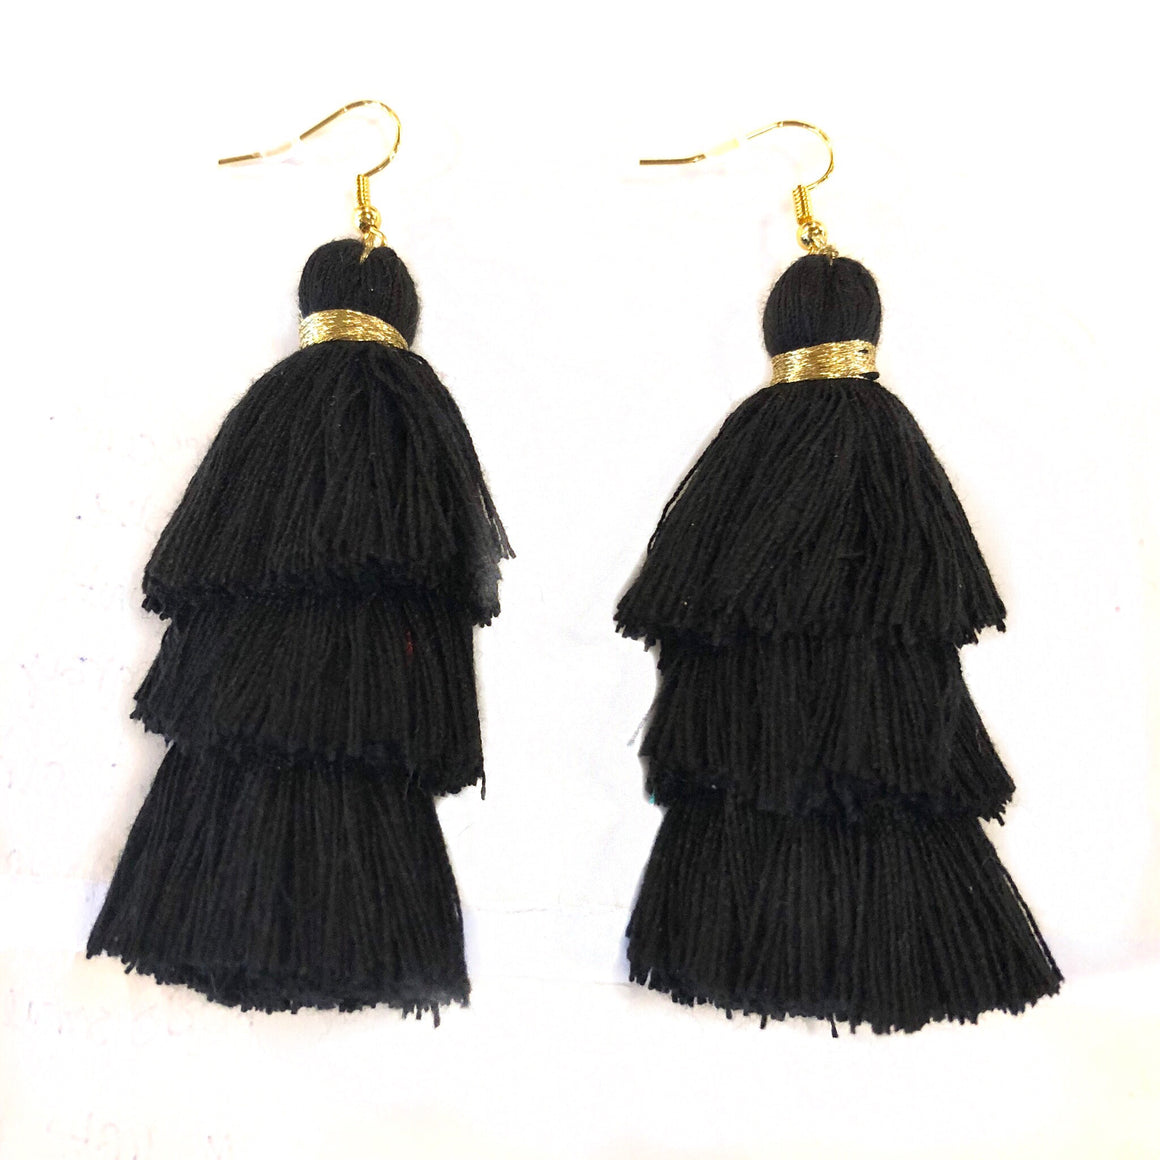 Black and Gold fringe Tassels - Nikki Smith Designs